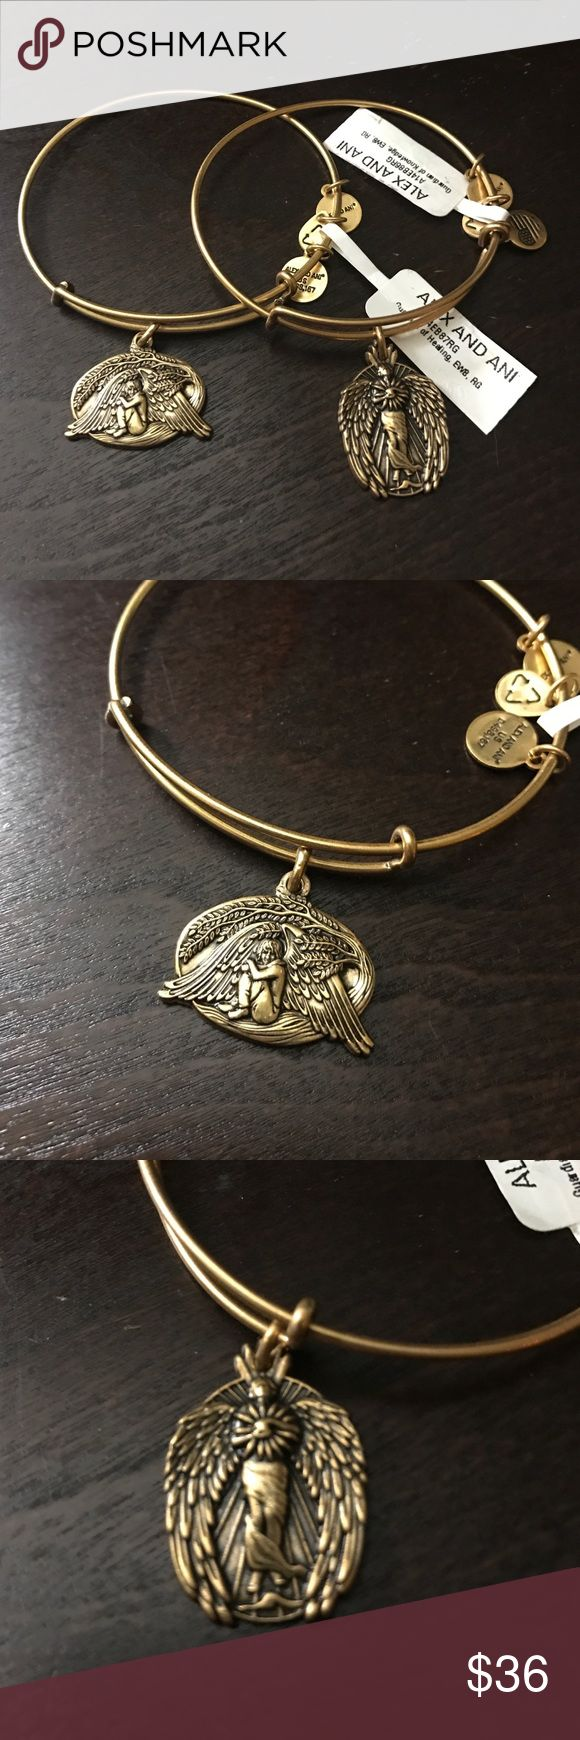 Alex and Ani gold bracelets Alex and Ani gold Guardian of knowledge, enlighten me and Guardian of healing, renew me. Both are brand new with retail tags Alex & Ani Jewelry Bracelets